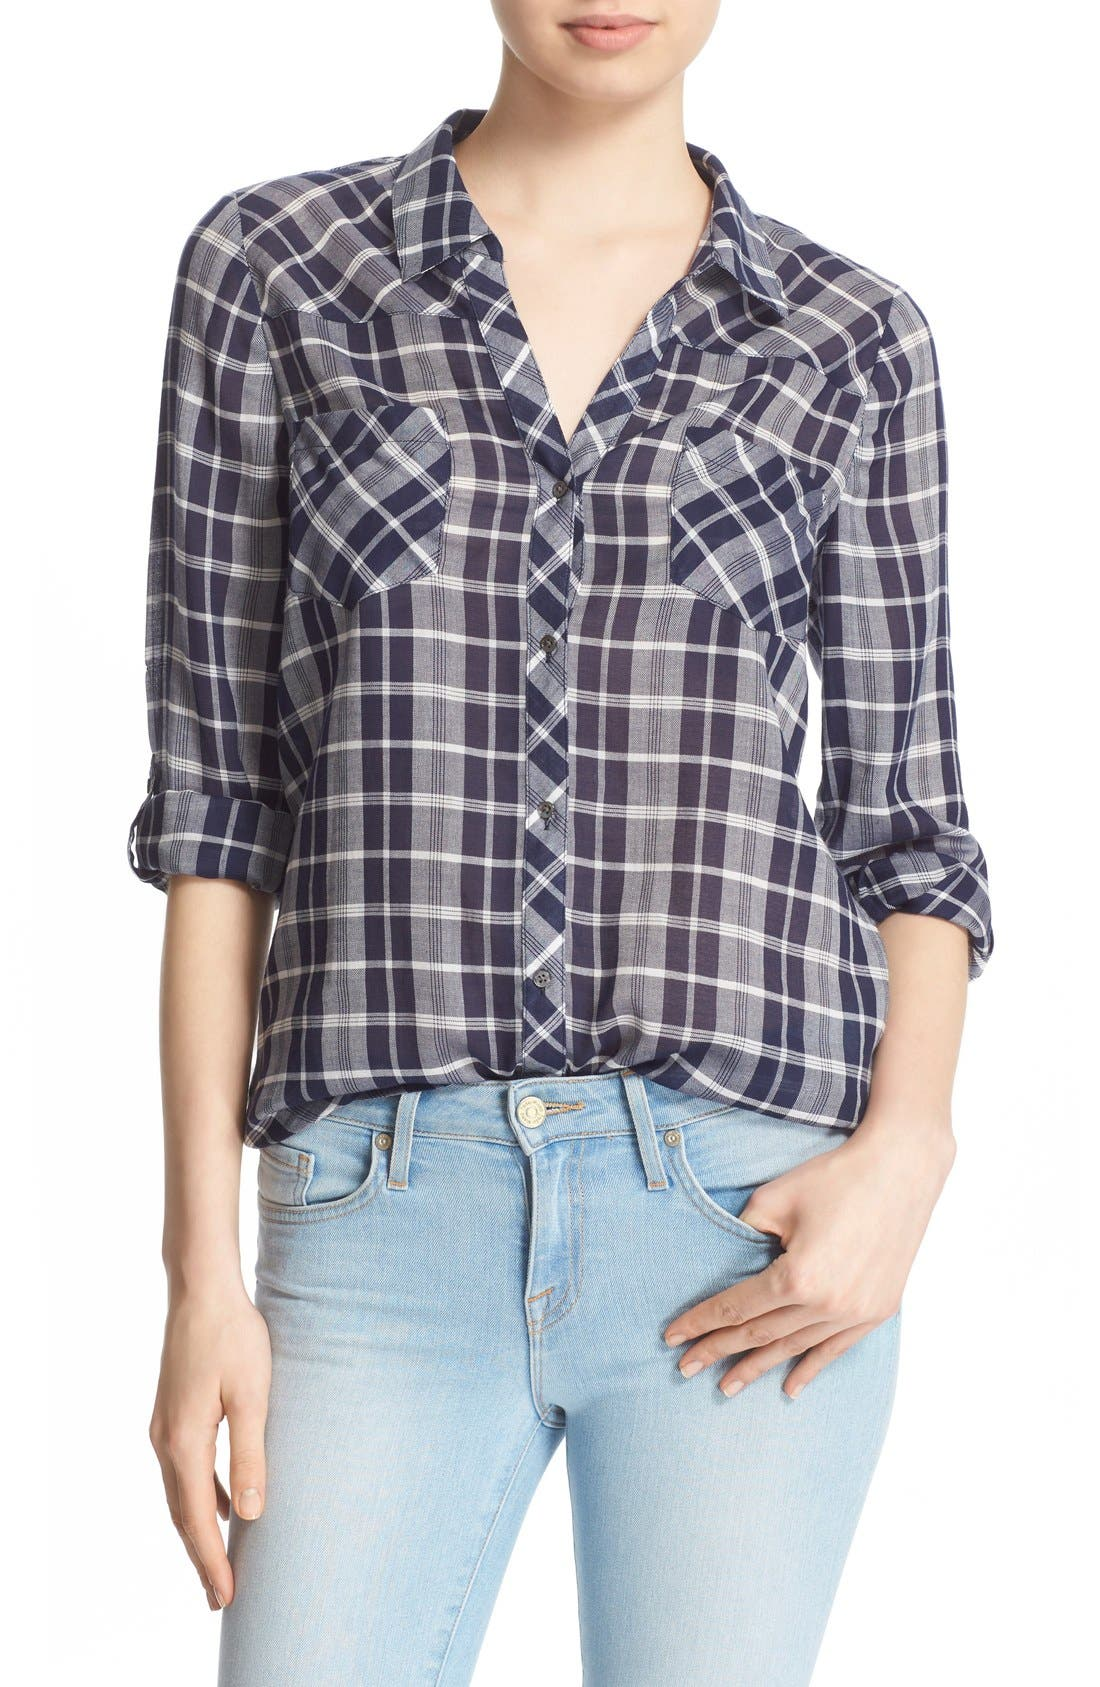 Alternate Image 1 Selected - Soft Joie 'Daesha' Plaid Shirt